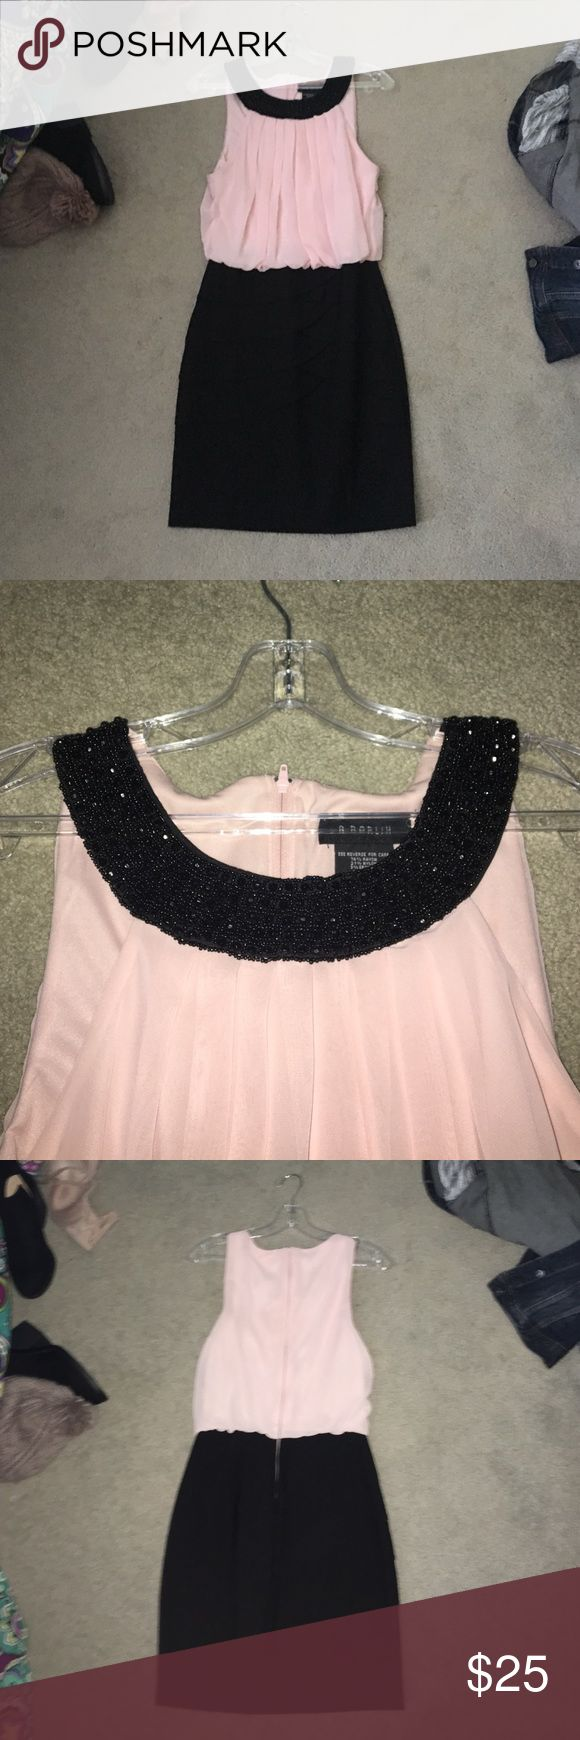 Homecoming dress Pink and black special occasion dress. Size 7/8 Dresses Prom